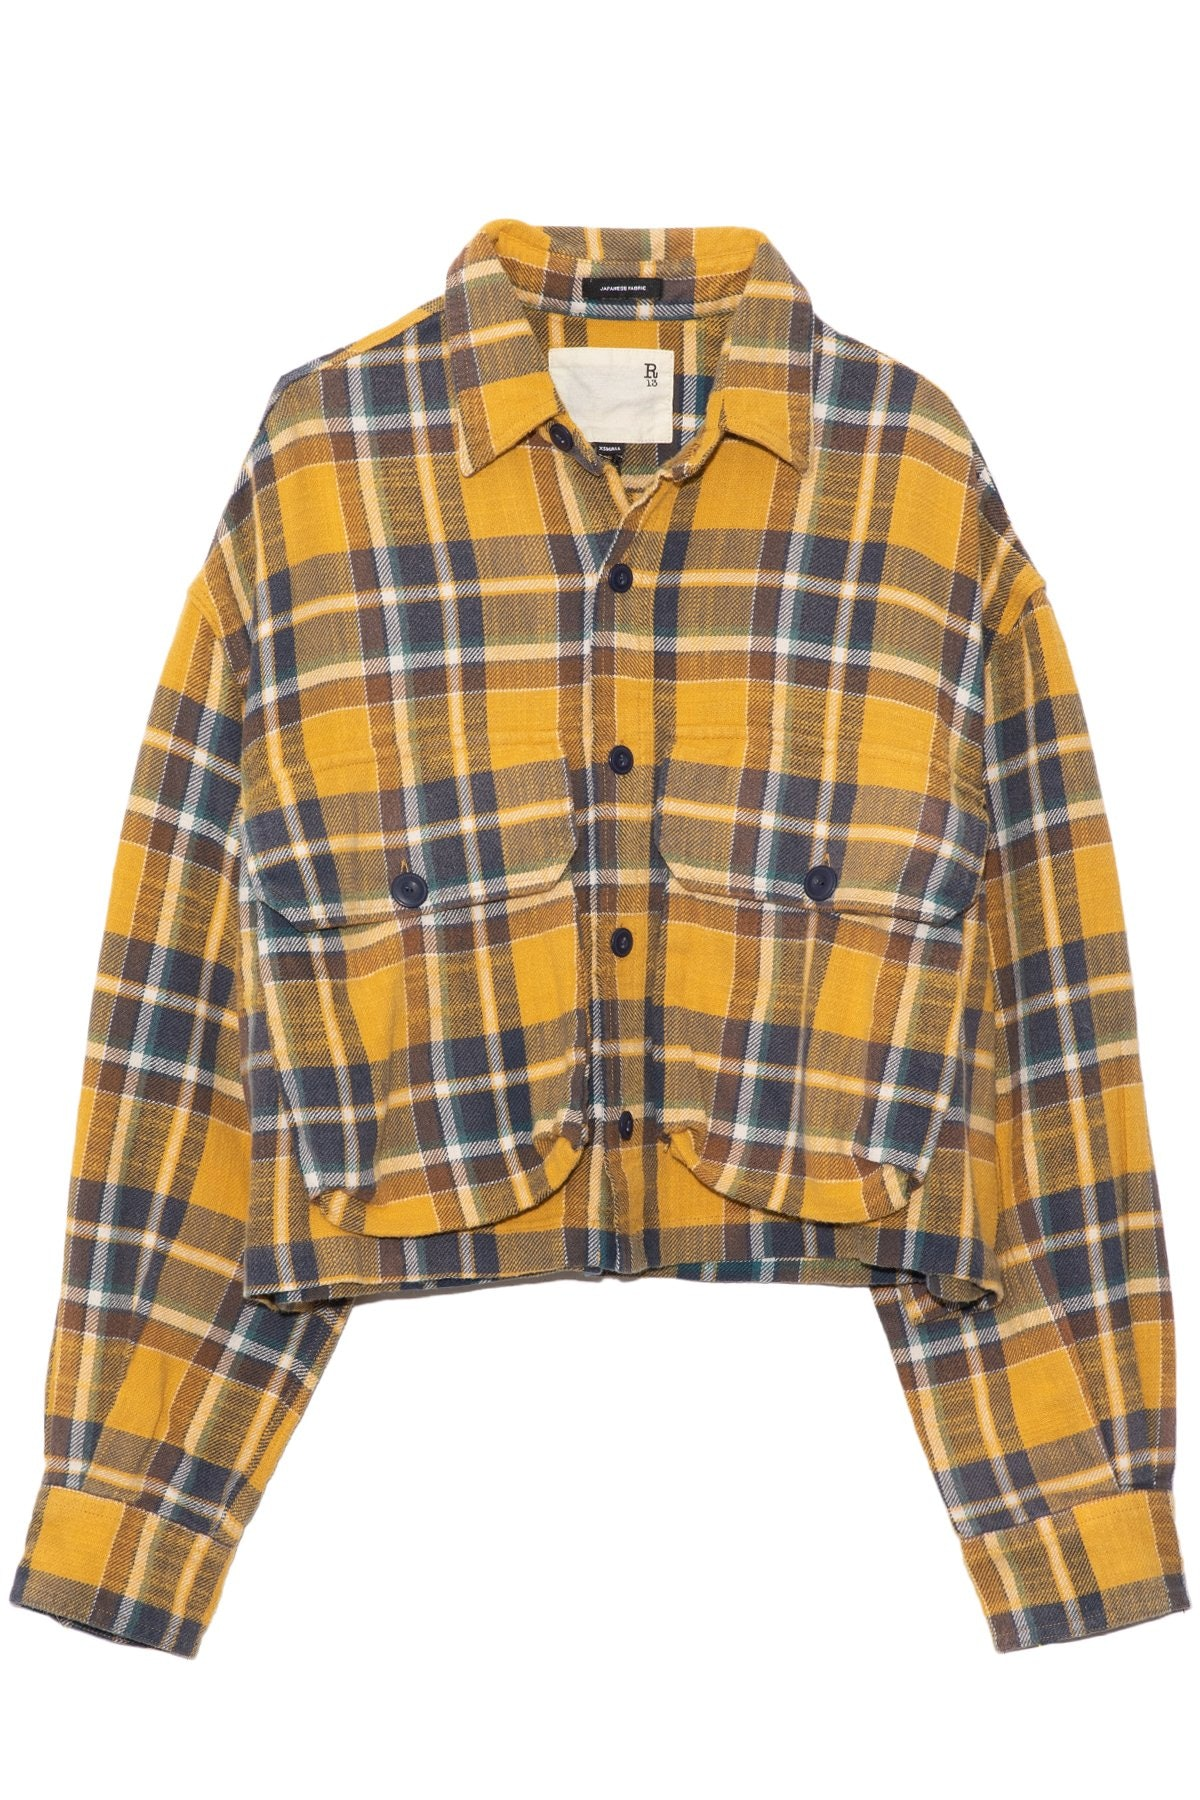 Oversized Cropped Shirt in Yellow Plaid: image 1